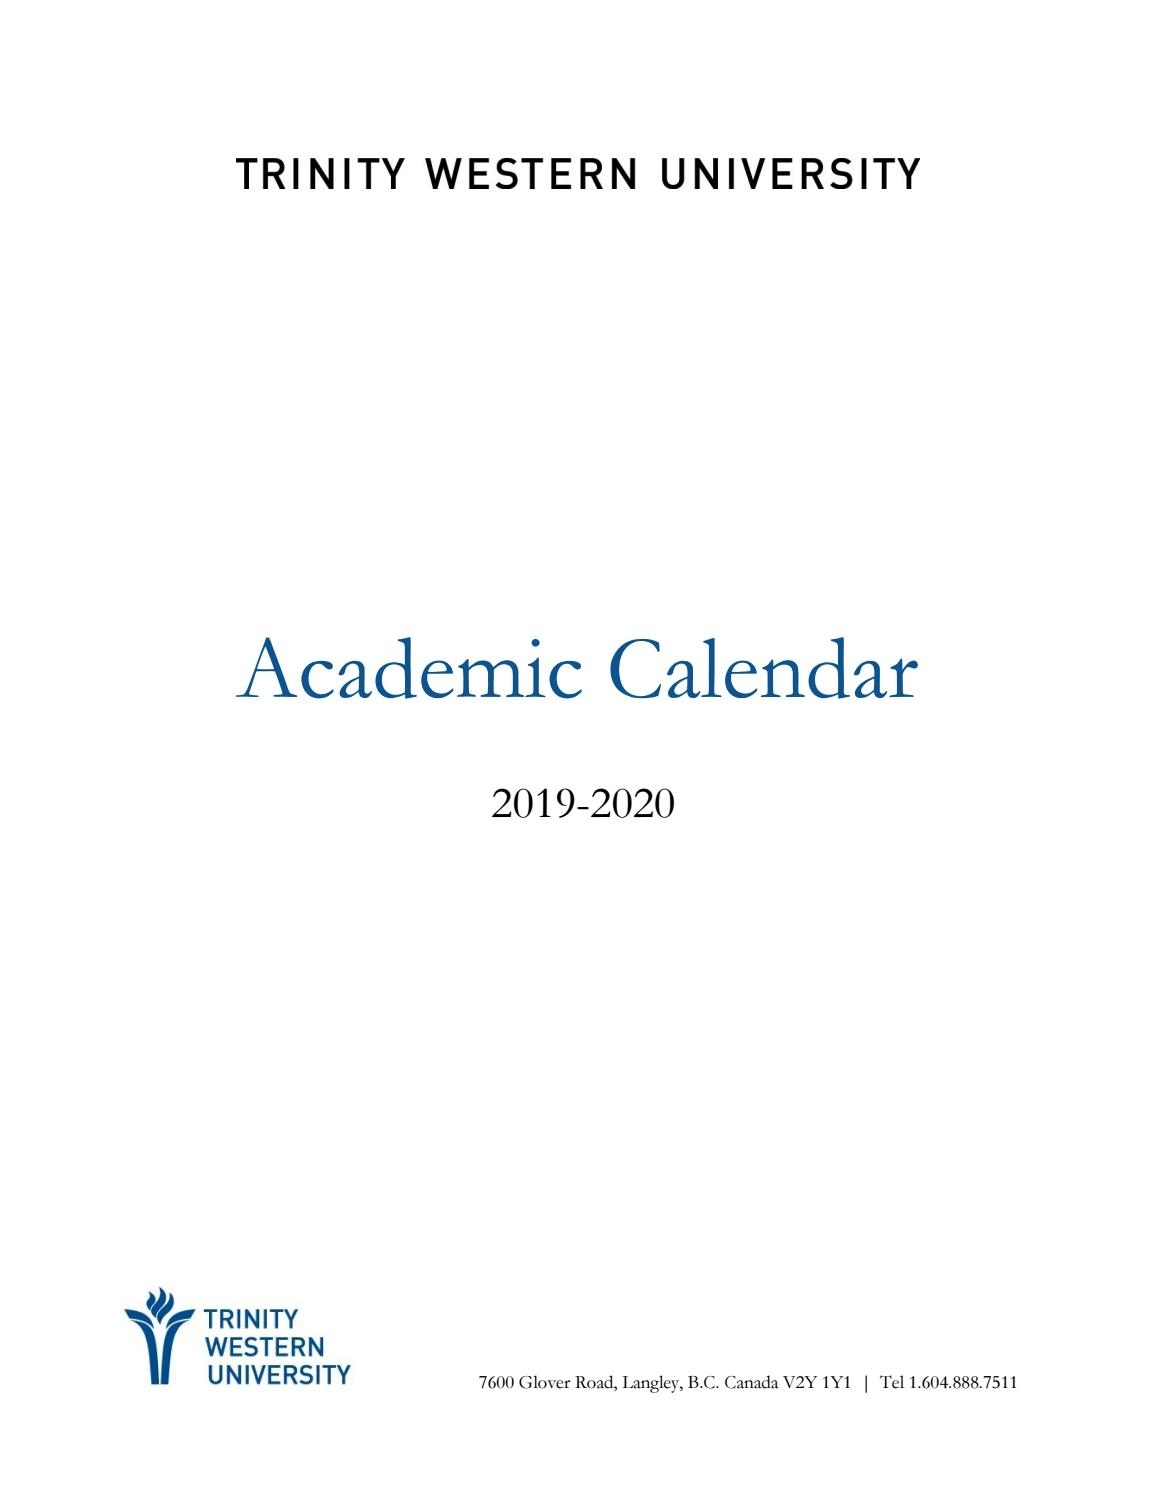 2019-20 Academic Calendartwu - Issuu in Catholic Extension Calendar 2020 Free Pdf